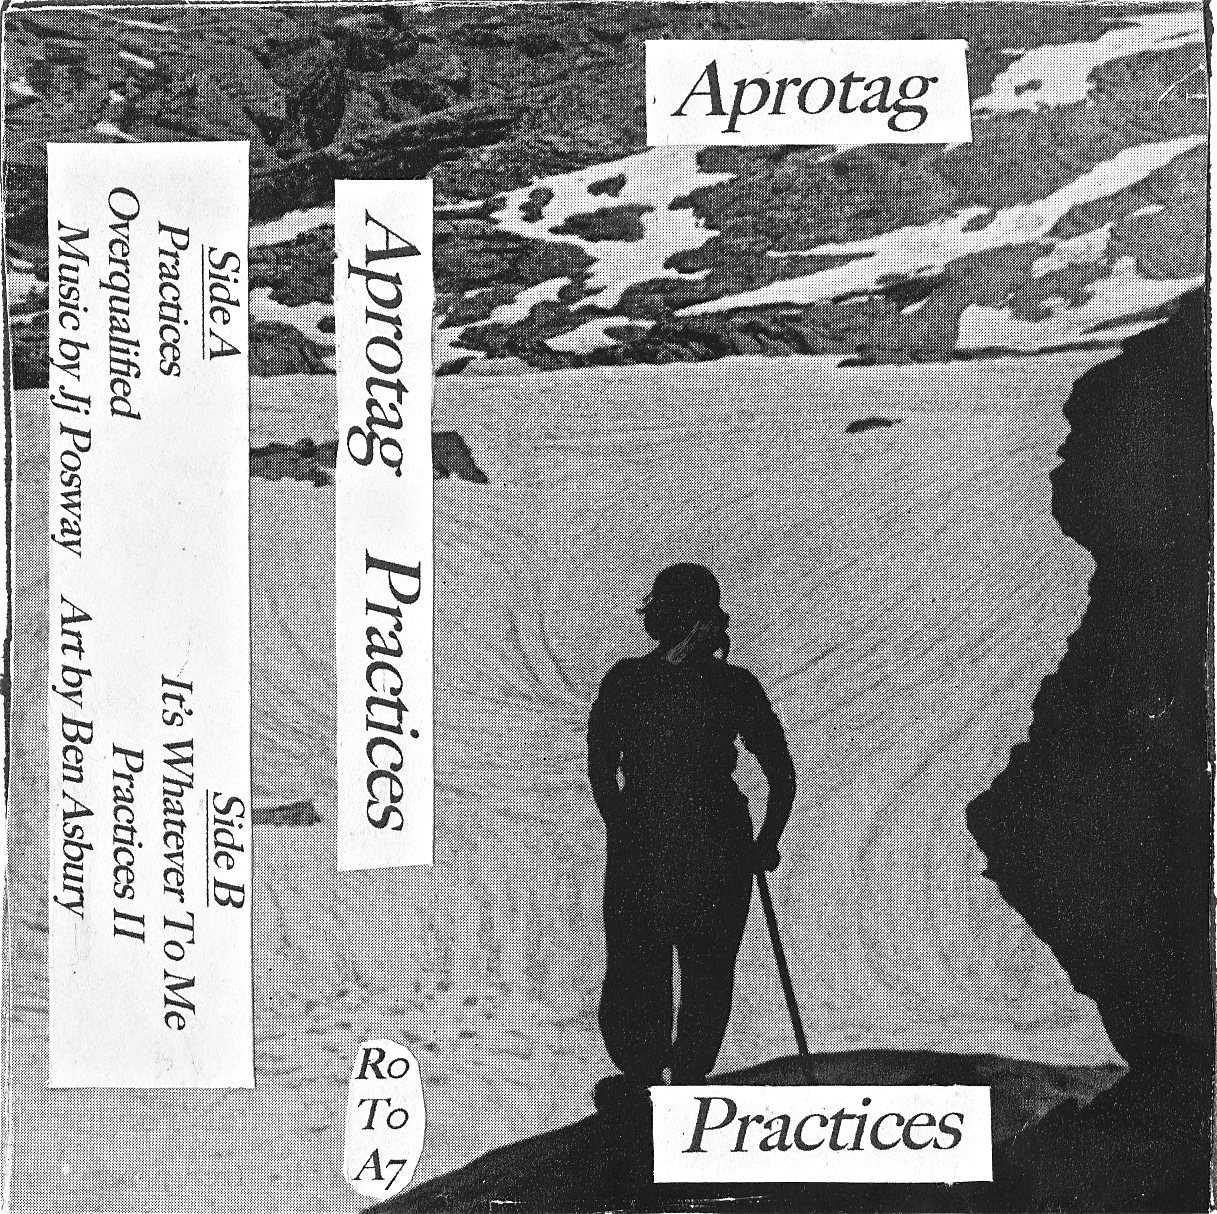 Aprotag - Practices